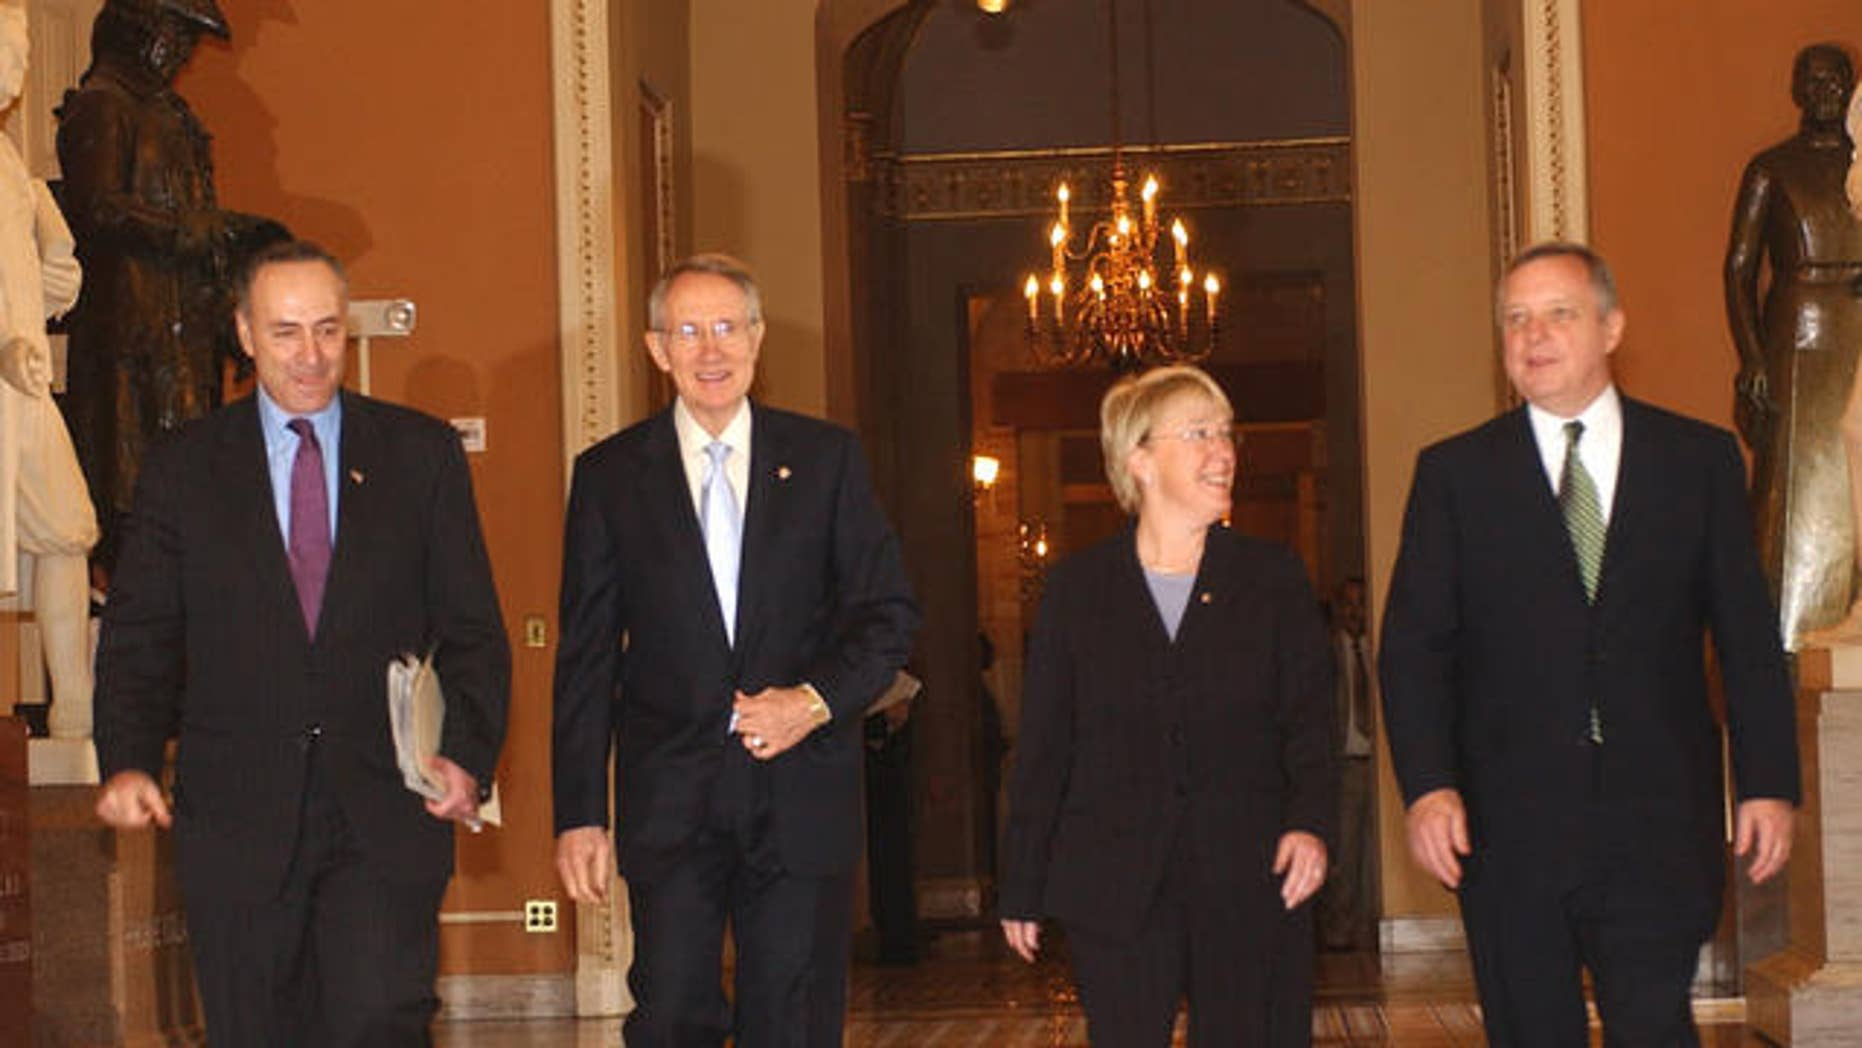 Incoming Senate Majority Leader Harry Reid of Nev., second from left, emerges from a Democratic caucus on Capitol Hill in Washington Tuesday. Nov. 14, 2006, after being elected incoming majority leader of the 110th congress. From left are Sen. Charles Schumer, D-N.Y., elected Democratic Conference vice chair; Reid; Sen. Patty Murray, D-Wash., elected conference secretary, and Sen. Richard Durbin, D-Ill., named assistant majority leader.     (AP Photo/Dennis Cook)